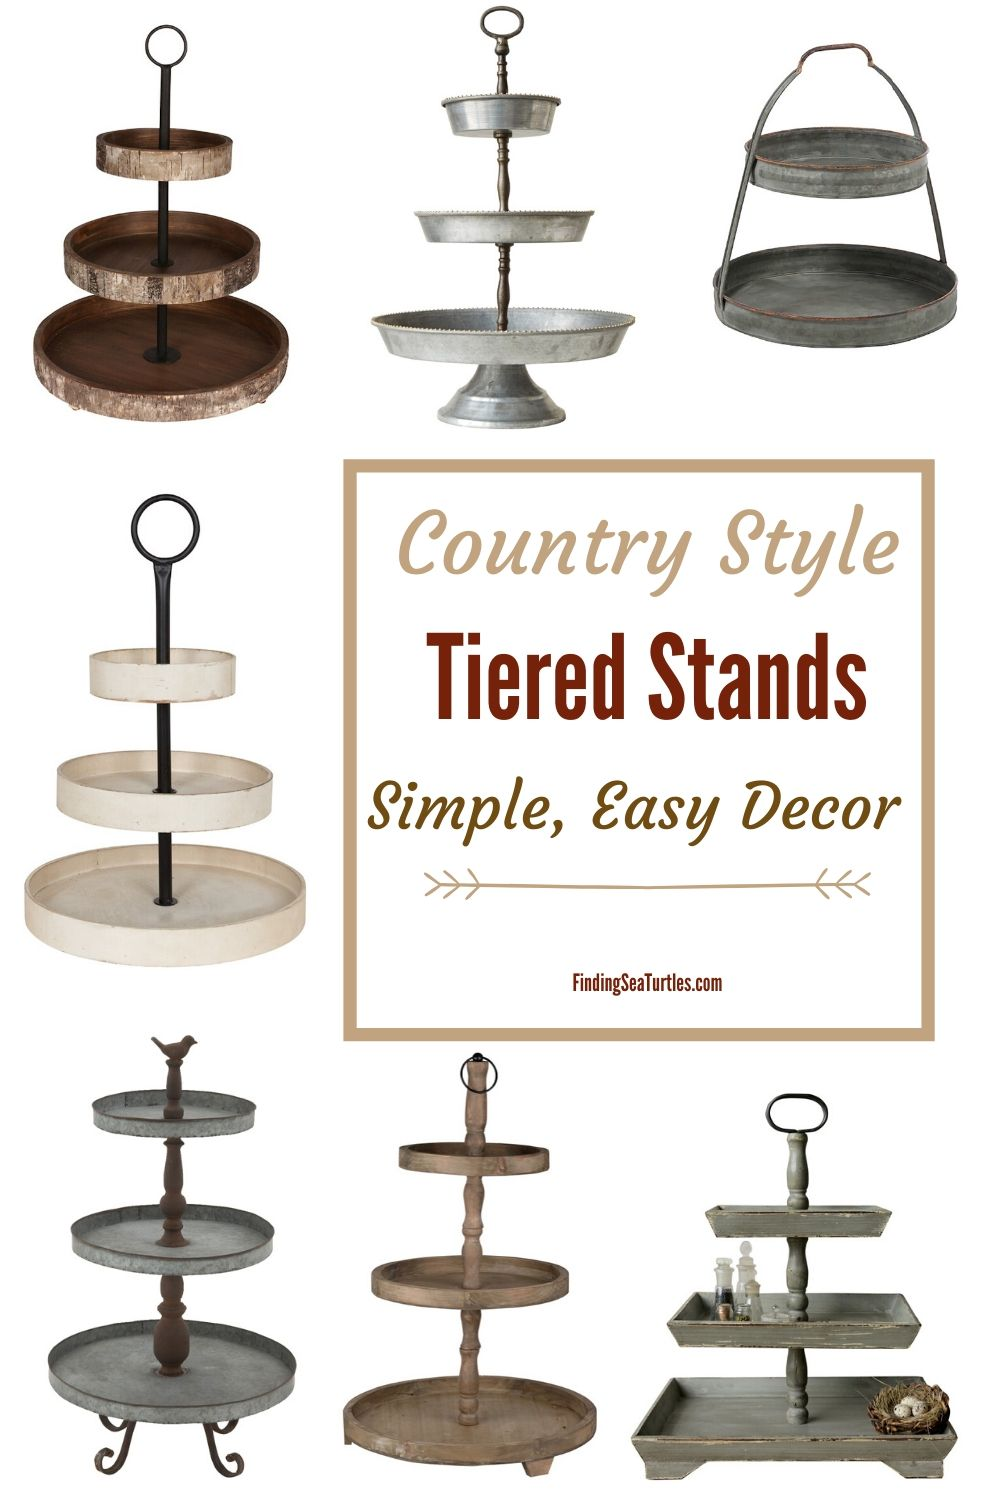 Country Style Simple Easy Decor 2 #TierStands #TierTrayStandd #Decor #FarmhouseDecor #RusticDecor #VintageDecor #CountryStyleDecor